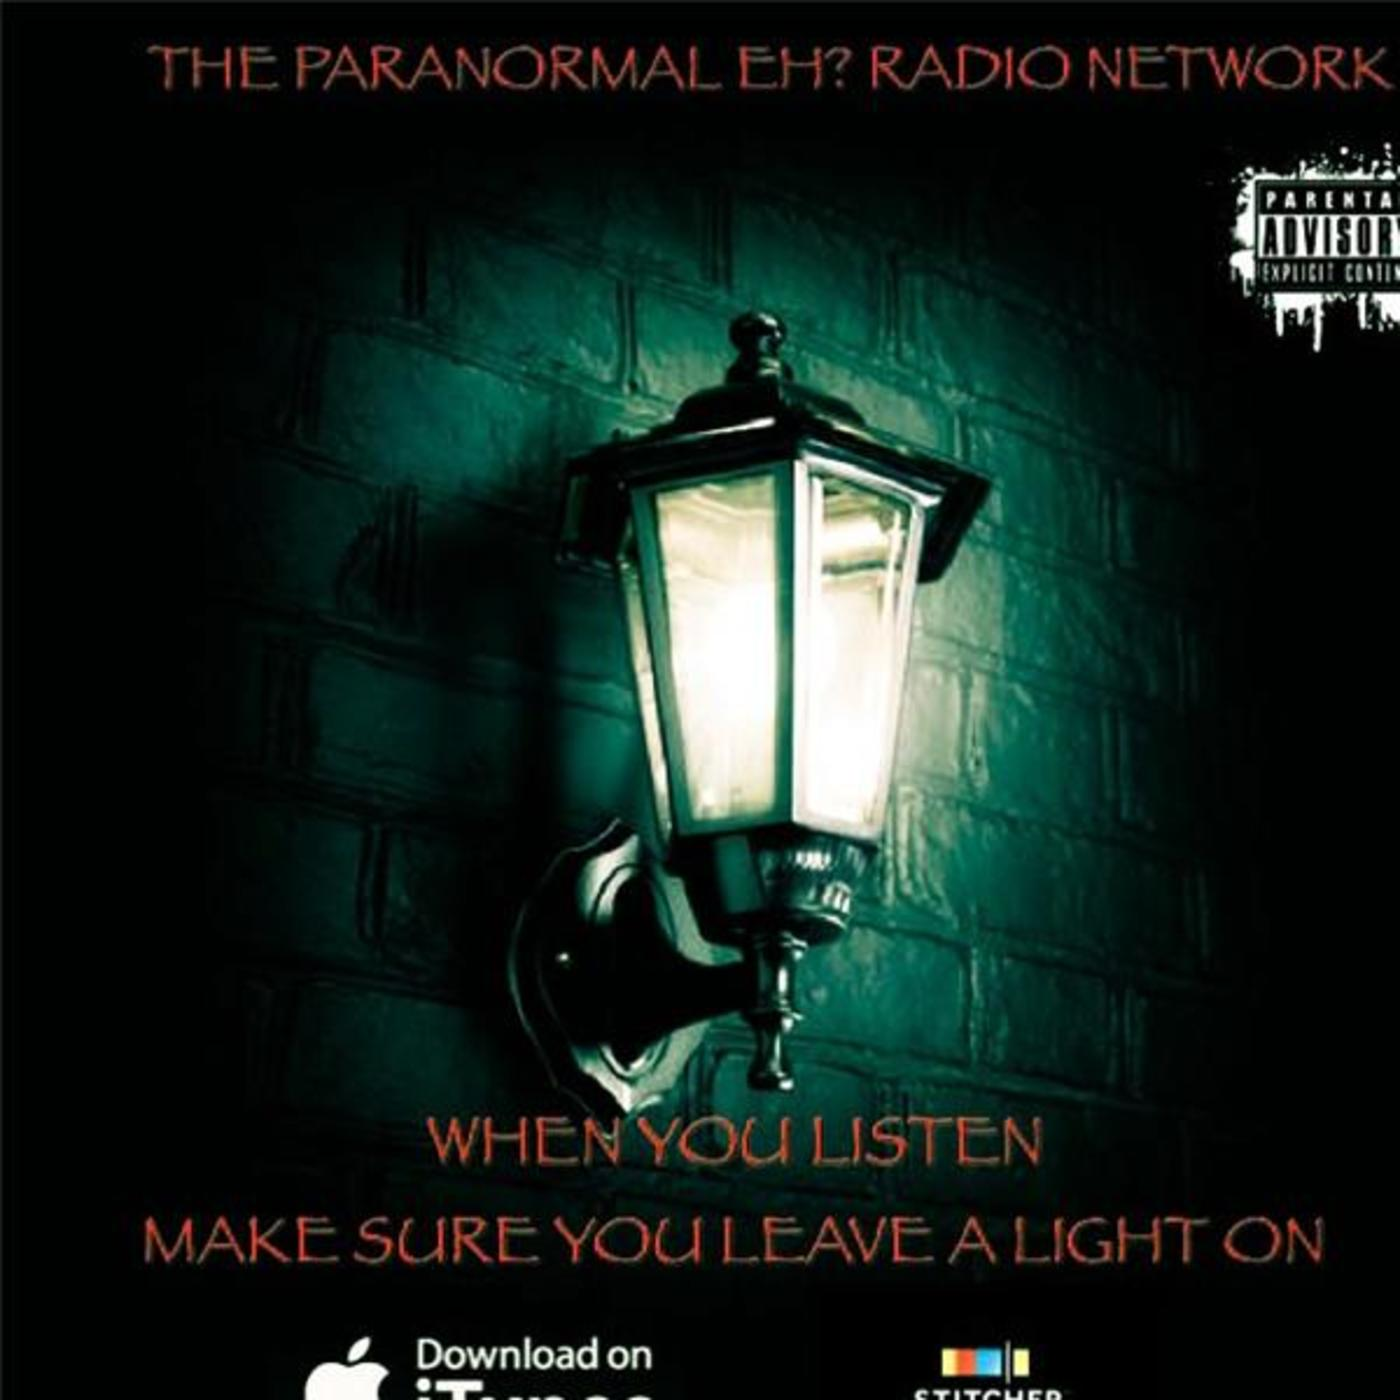 Paranormal Eh? Radio